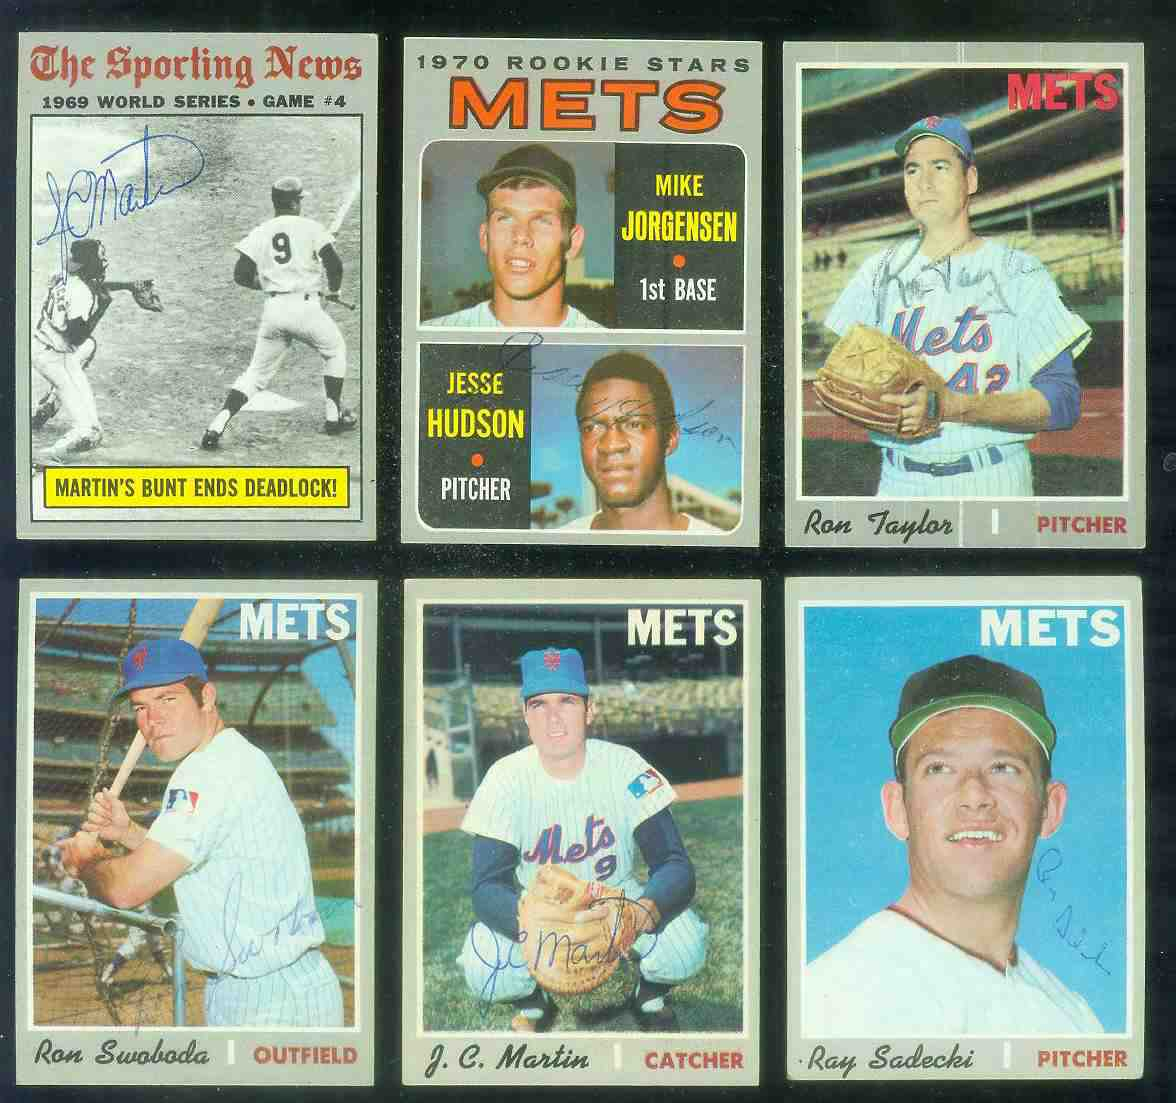 1970 Topps #308 World Series Game #4 AUTOGRAPHED by J.C. Martin (Mets) Baseball cards value